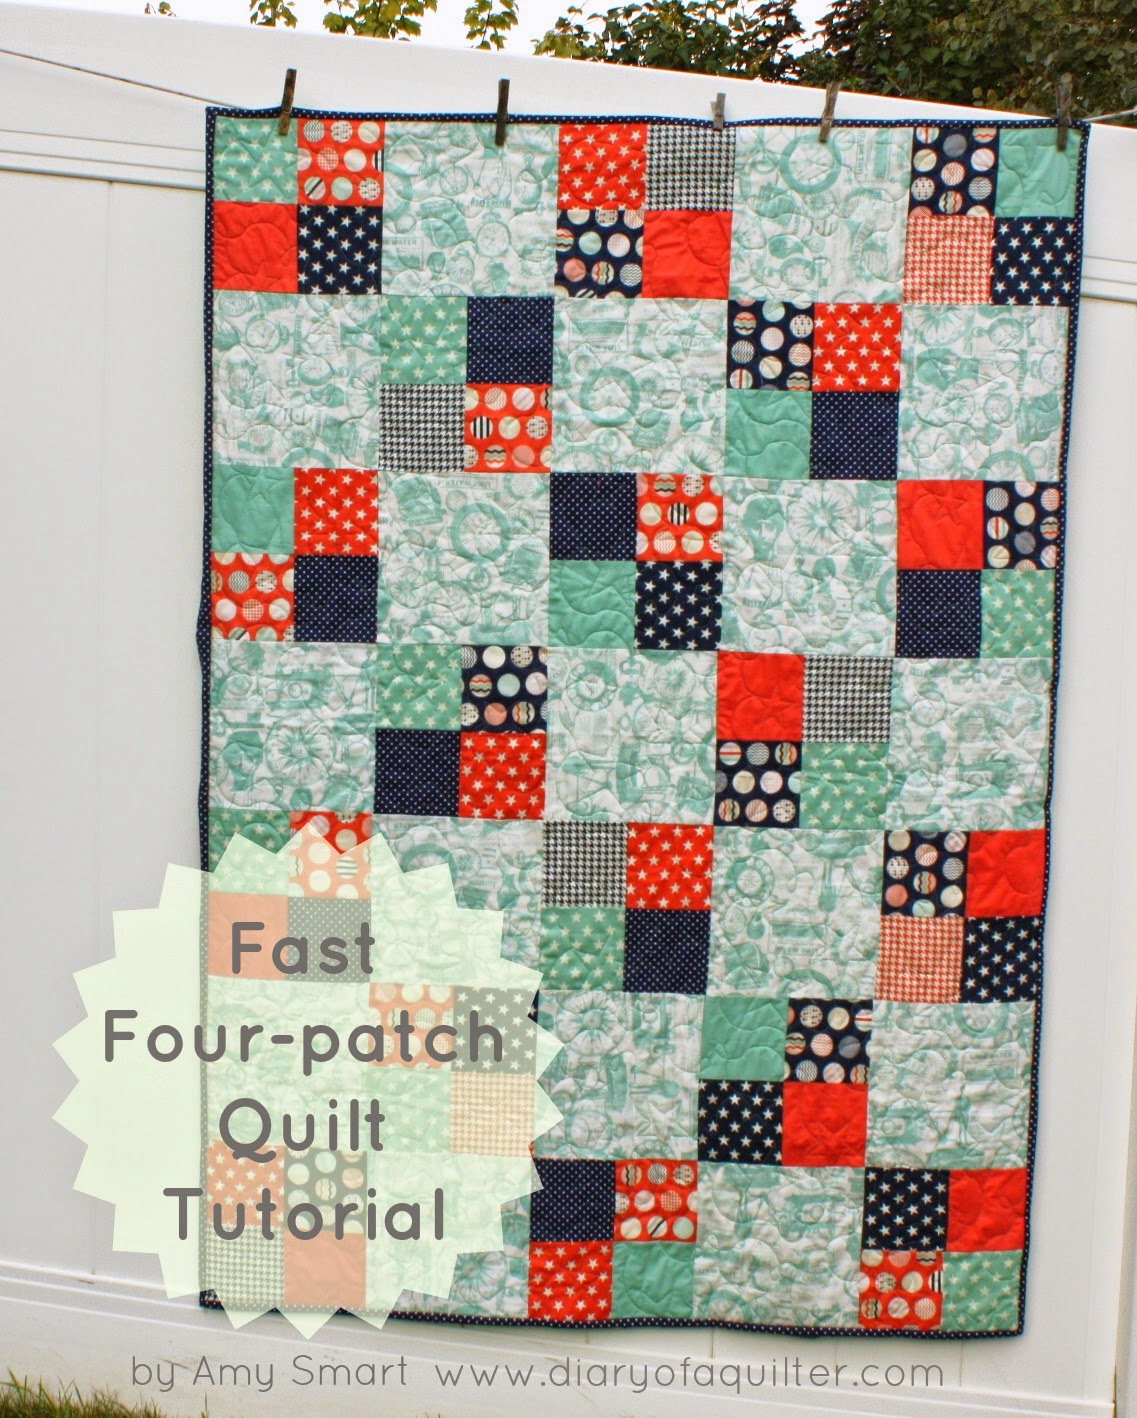 Fast Four-Patch Quilt Tutorial - Diary of a Quilter - a quilt blog